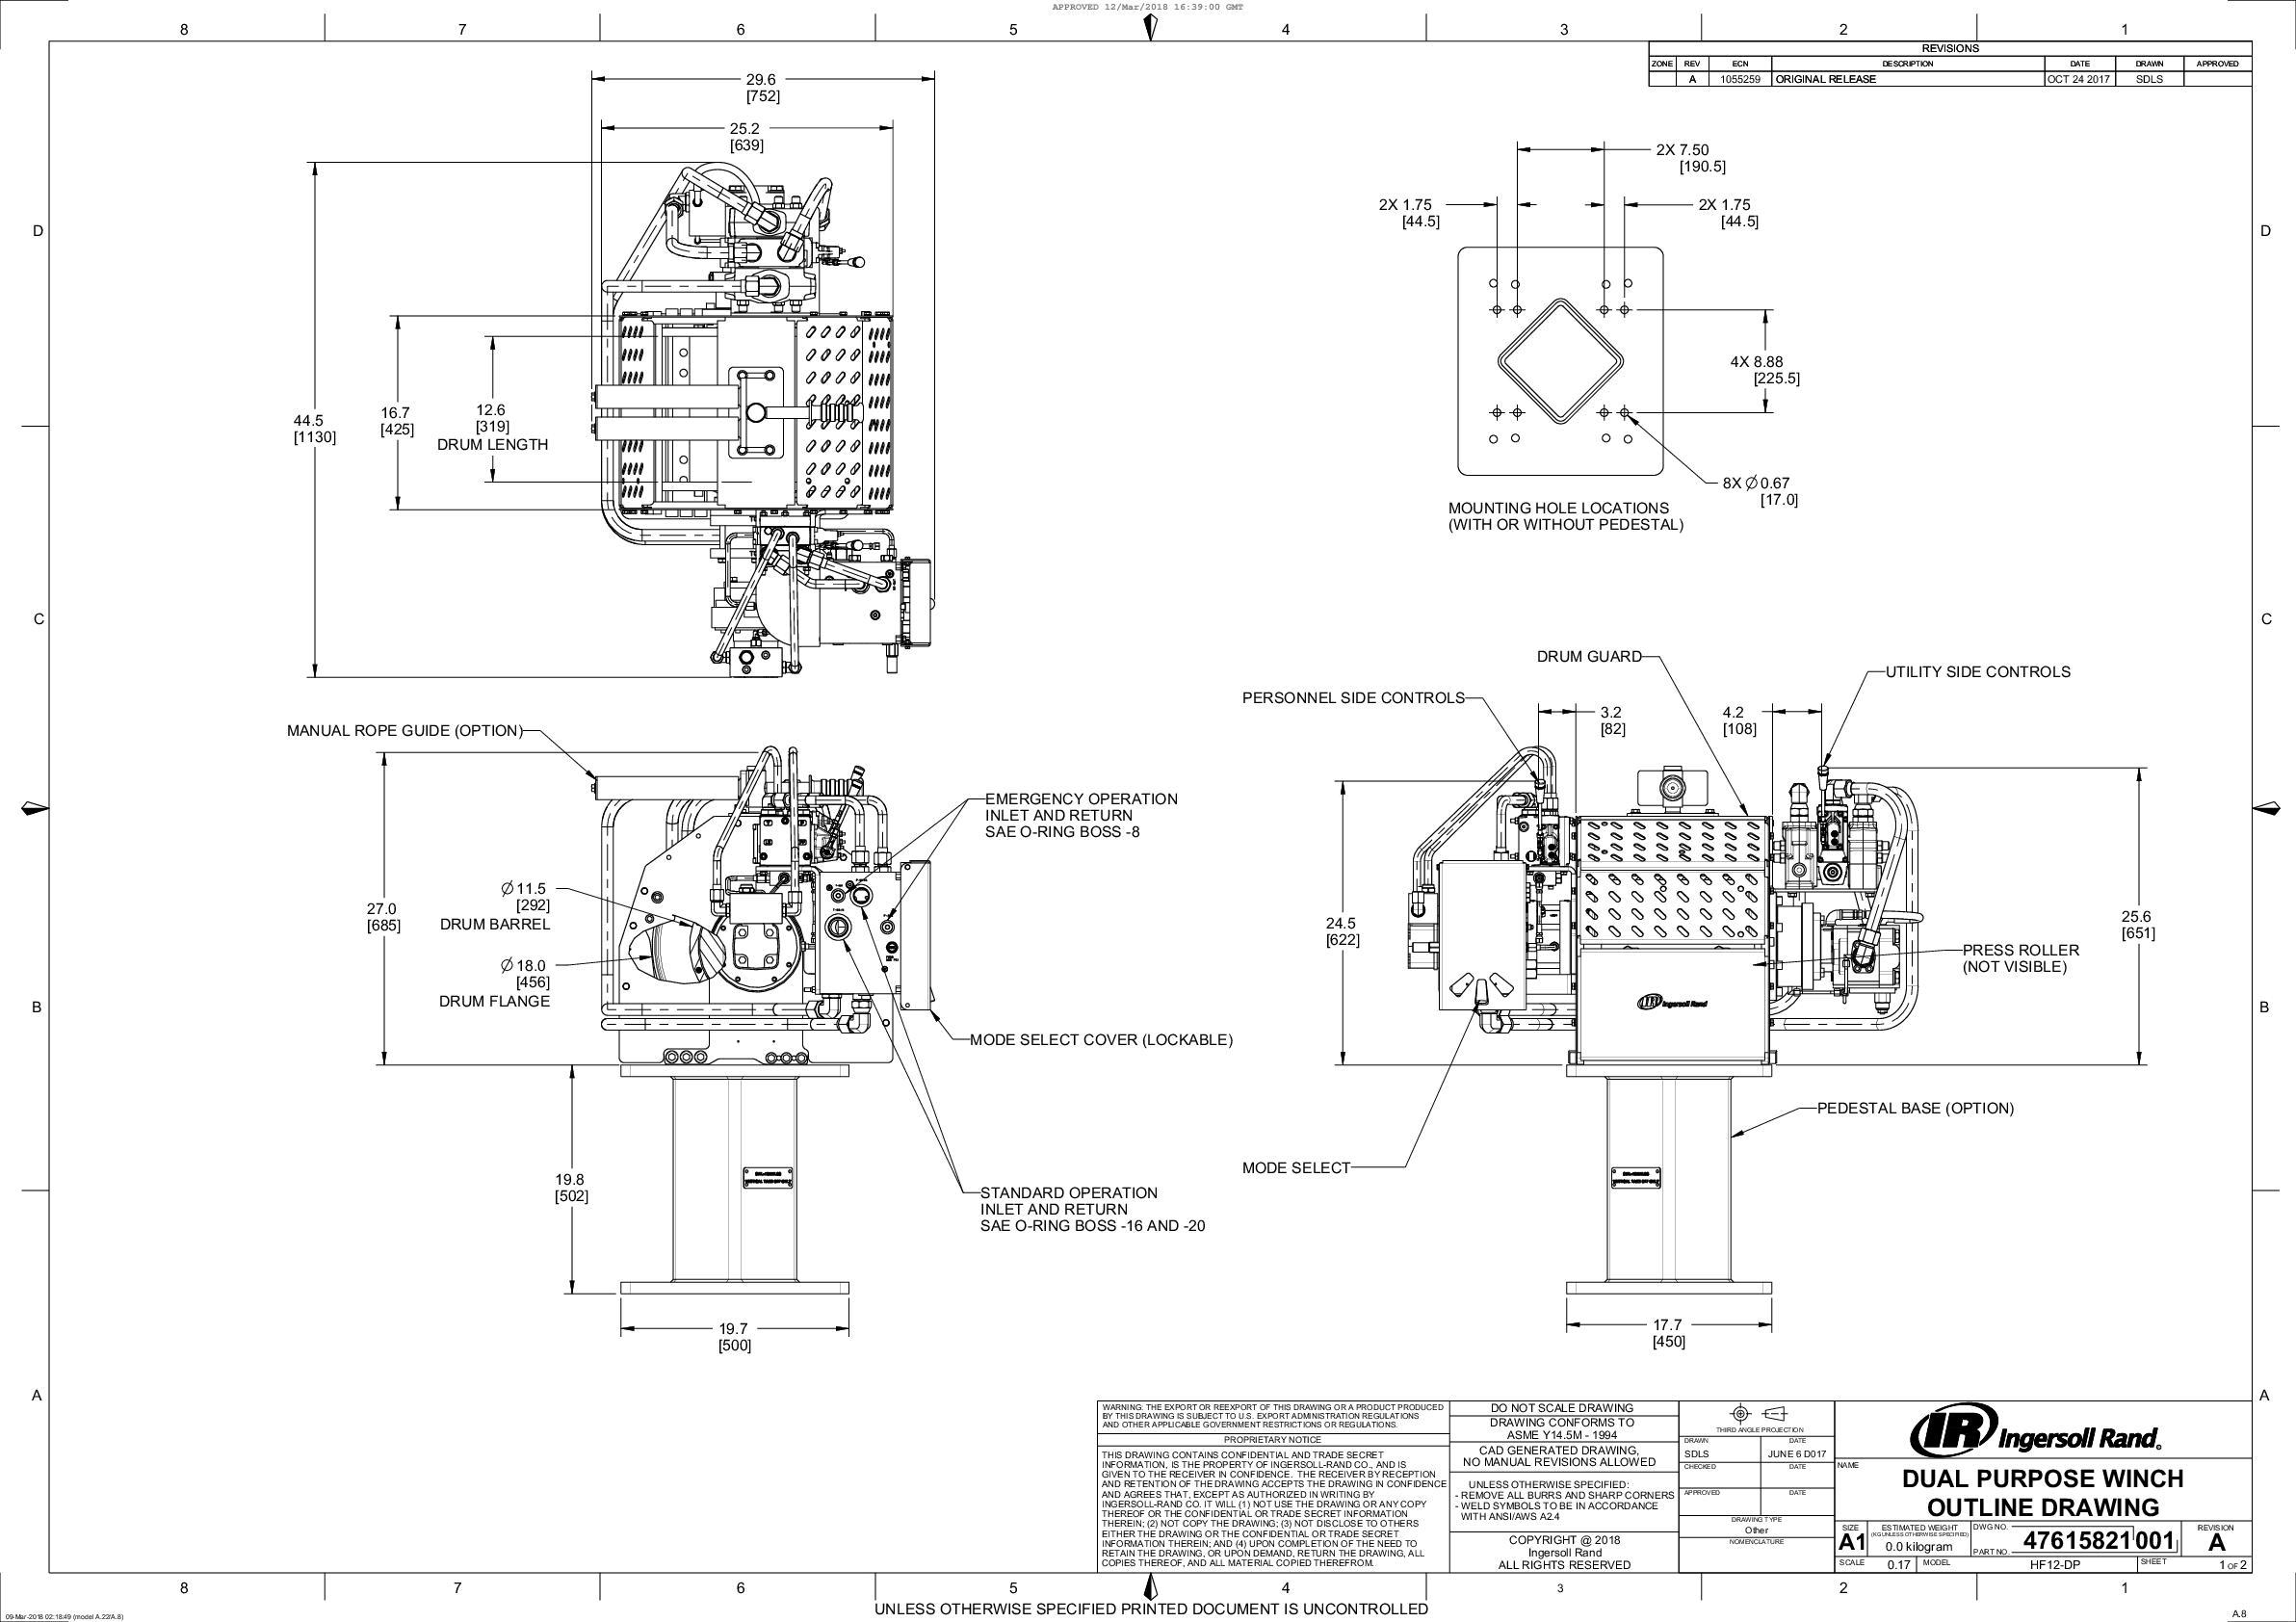 Hydraulic Force Series Dual Purpose Winch General Arrangement Drawing